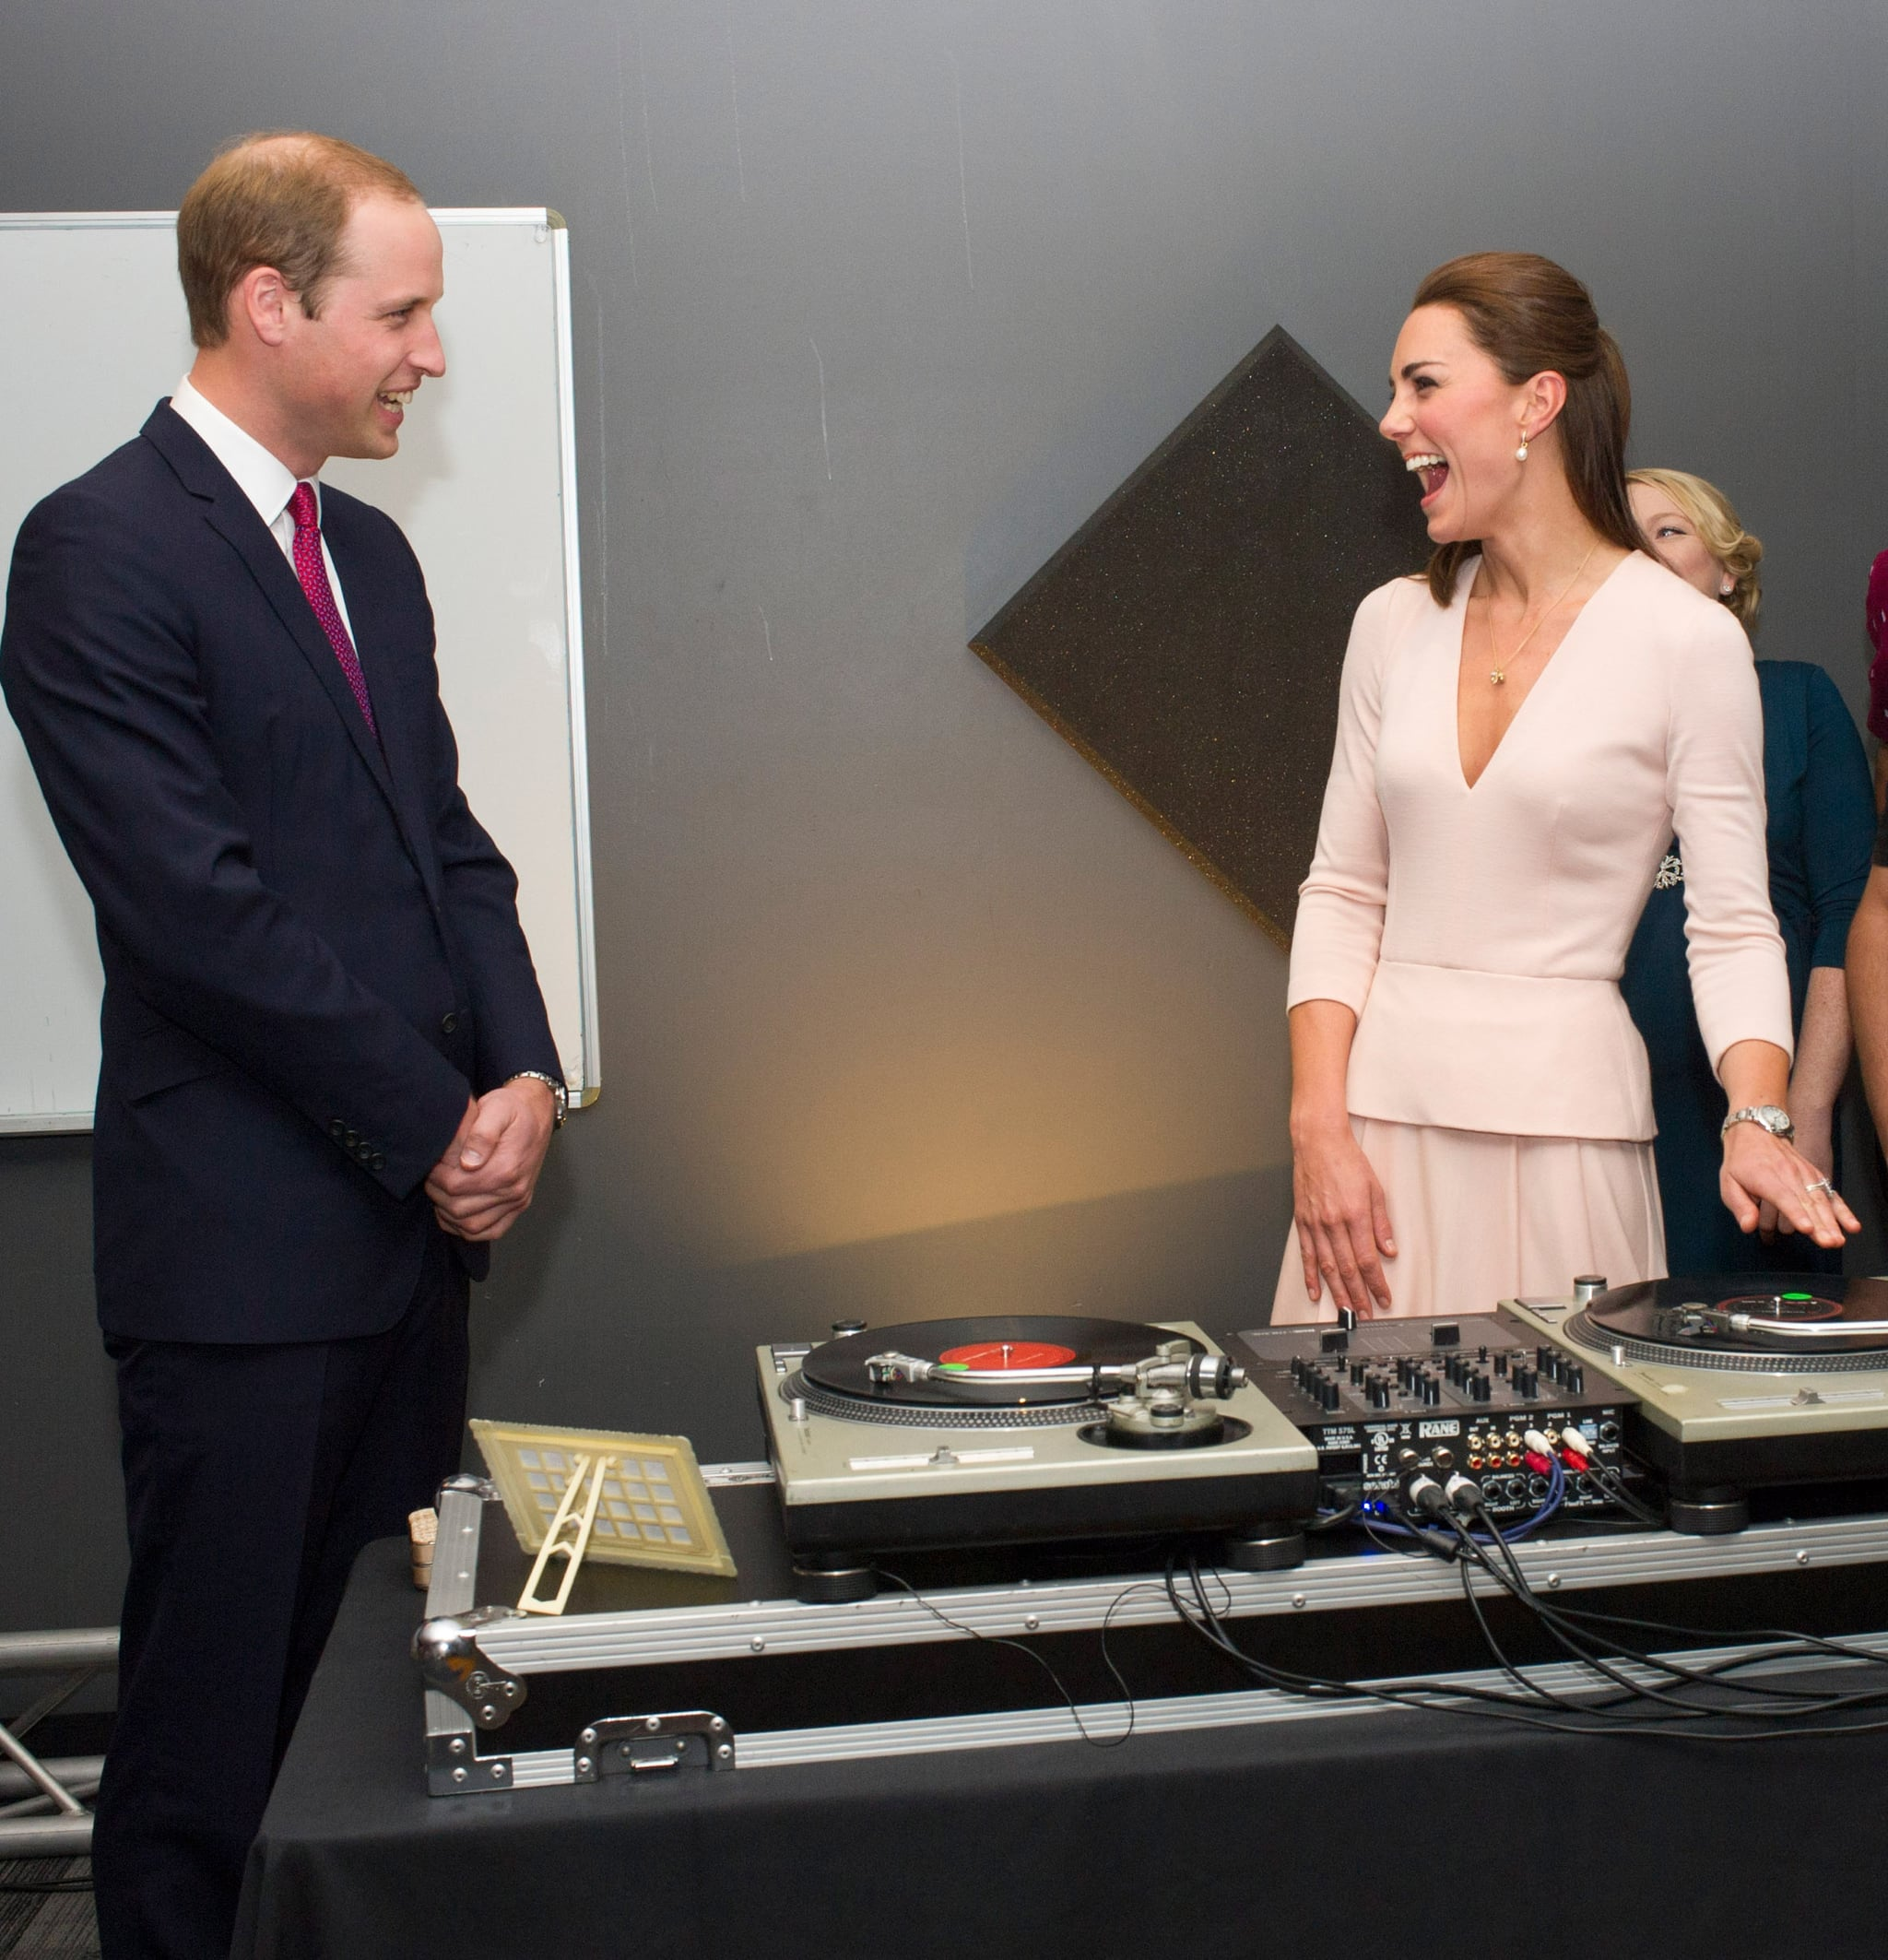 Kate Middleton cracked up while channeling her inner DJ in front of Prince William in Adelaide, Australia during their April 2014 royal tour.